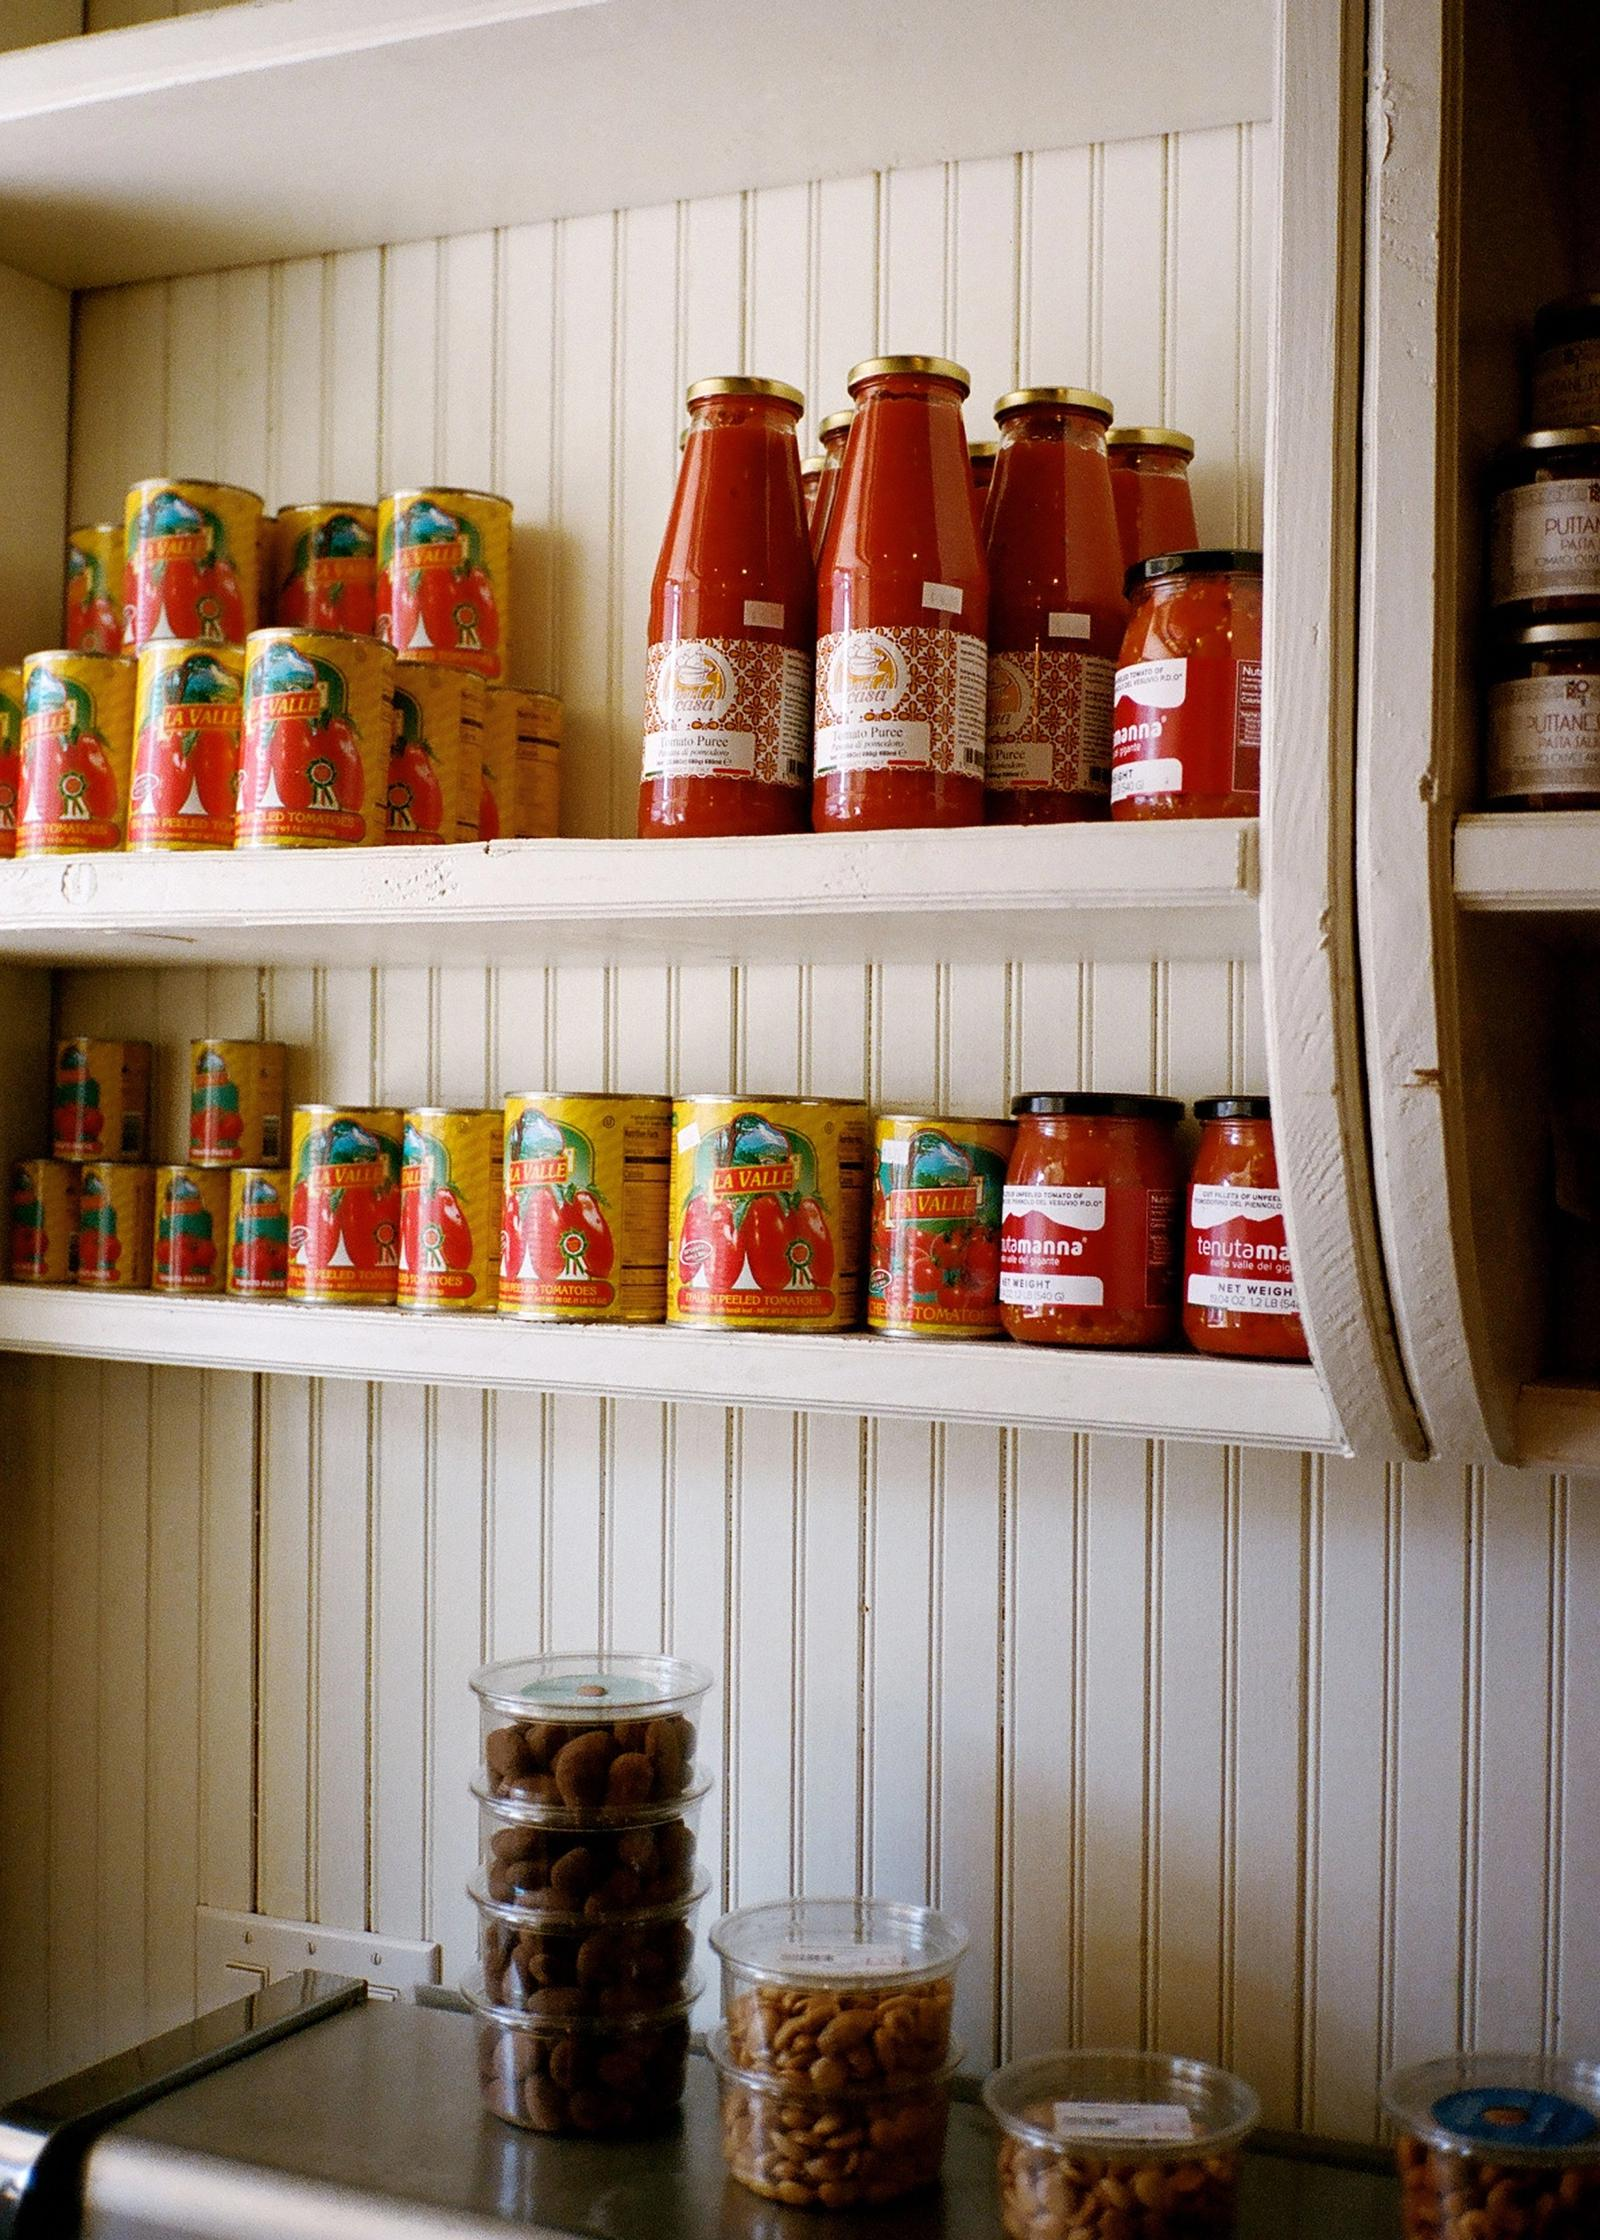 tomato sauce for sale on shelves at SARAGHINA BAKERY